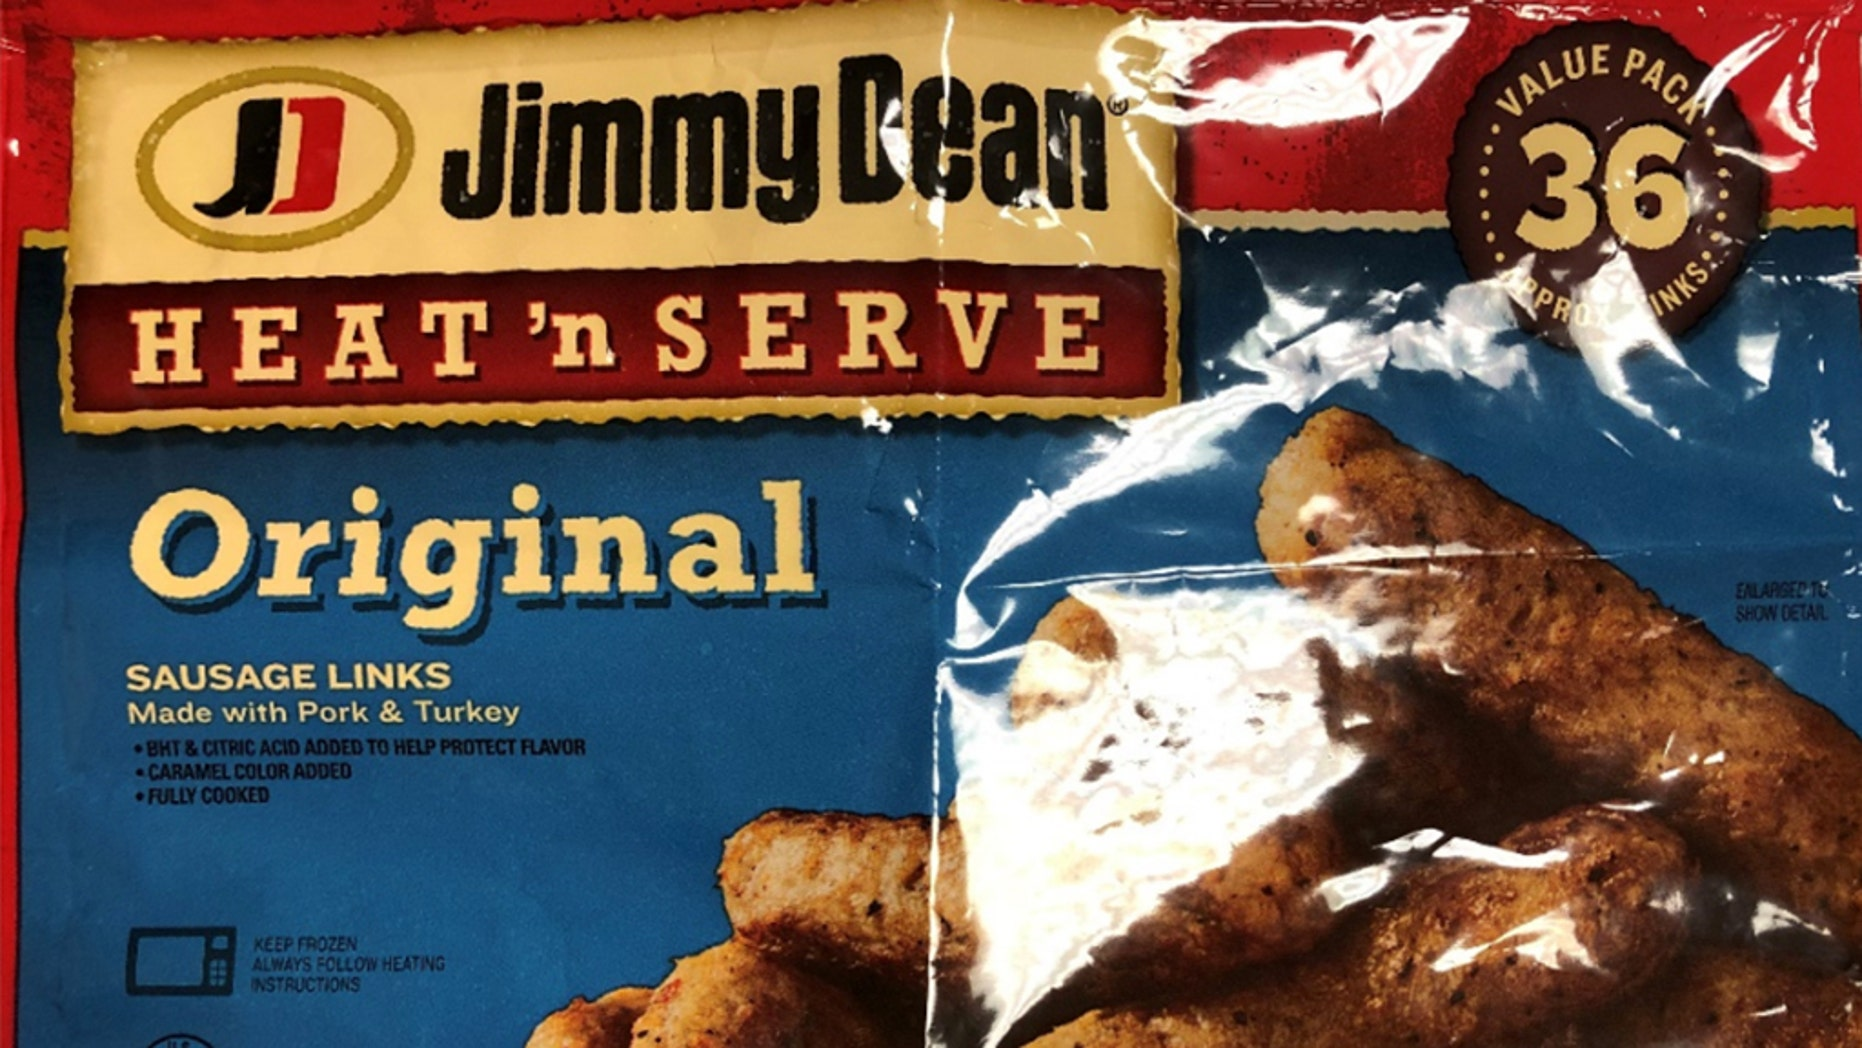 More than 29,000 pounds of the sausage links were recalled.